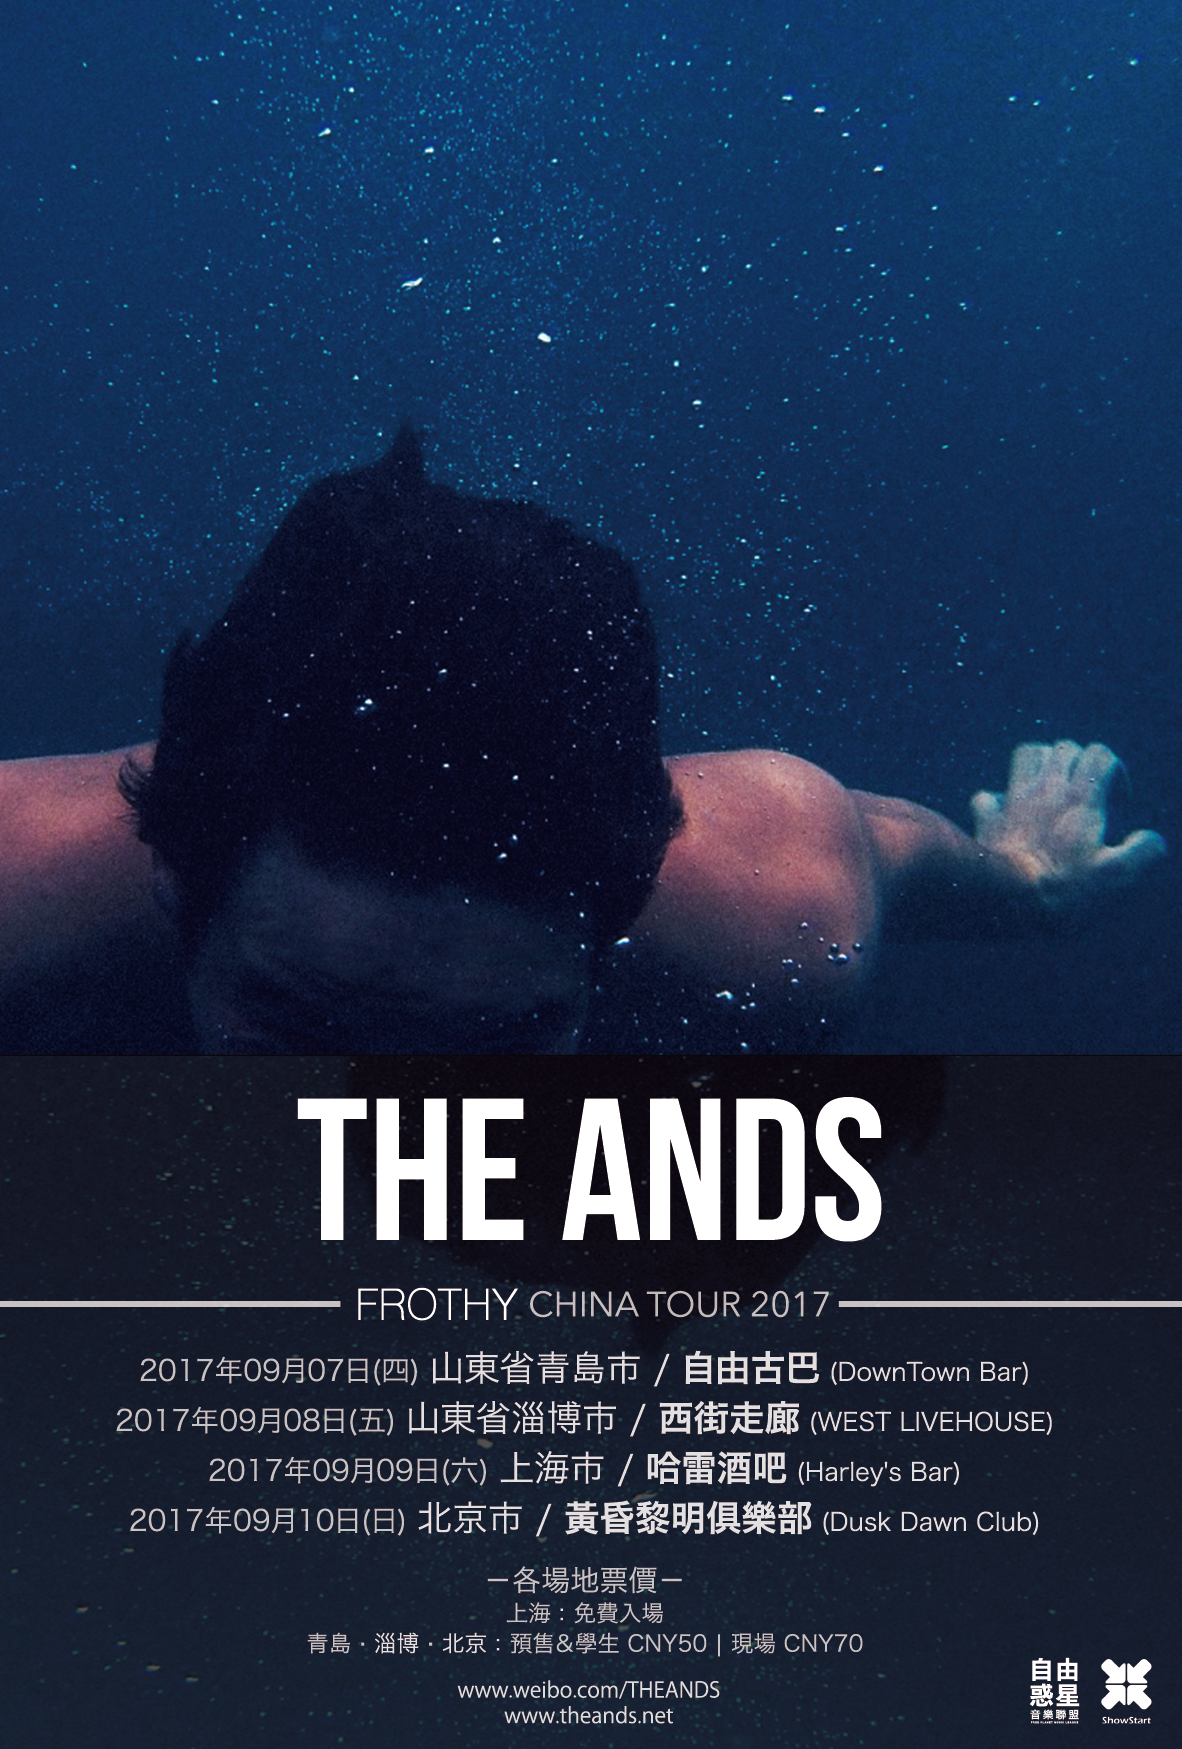 THE ANDS巡演海报